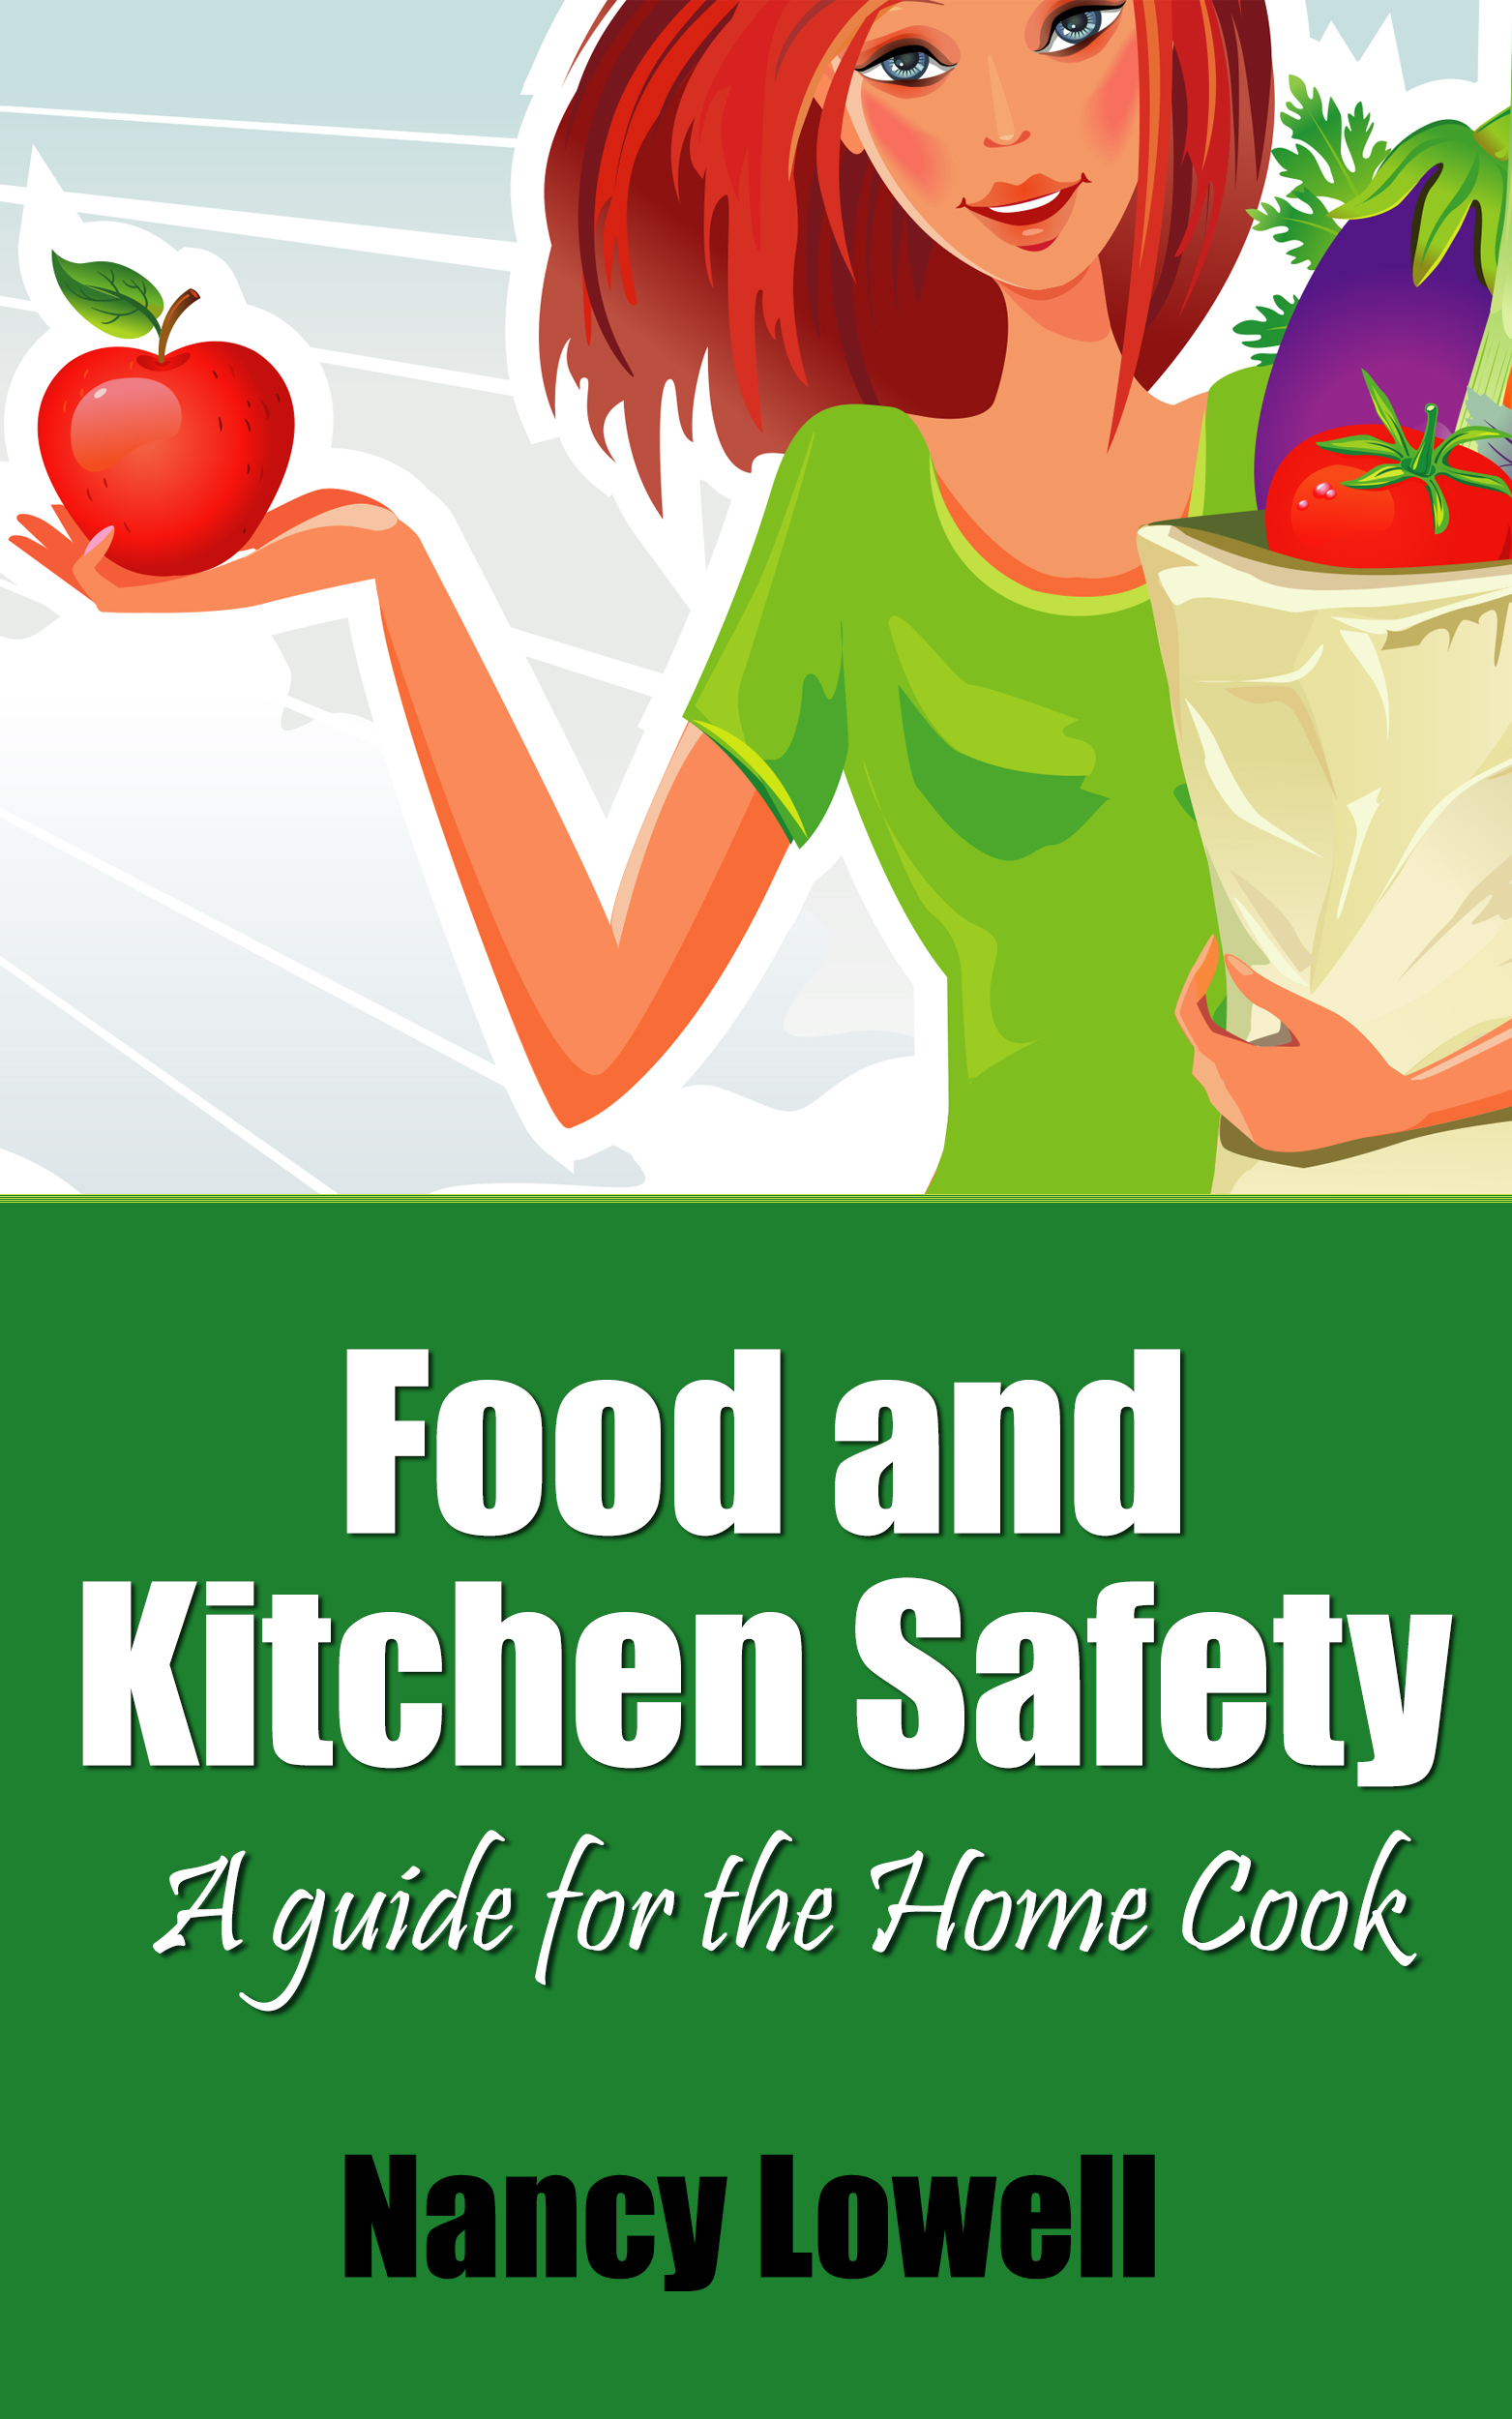 Food and Kitchen Safety | A Guide for the Home Cook